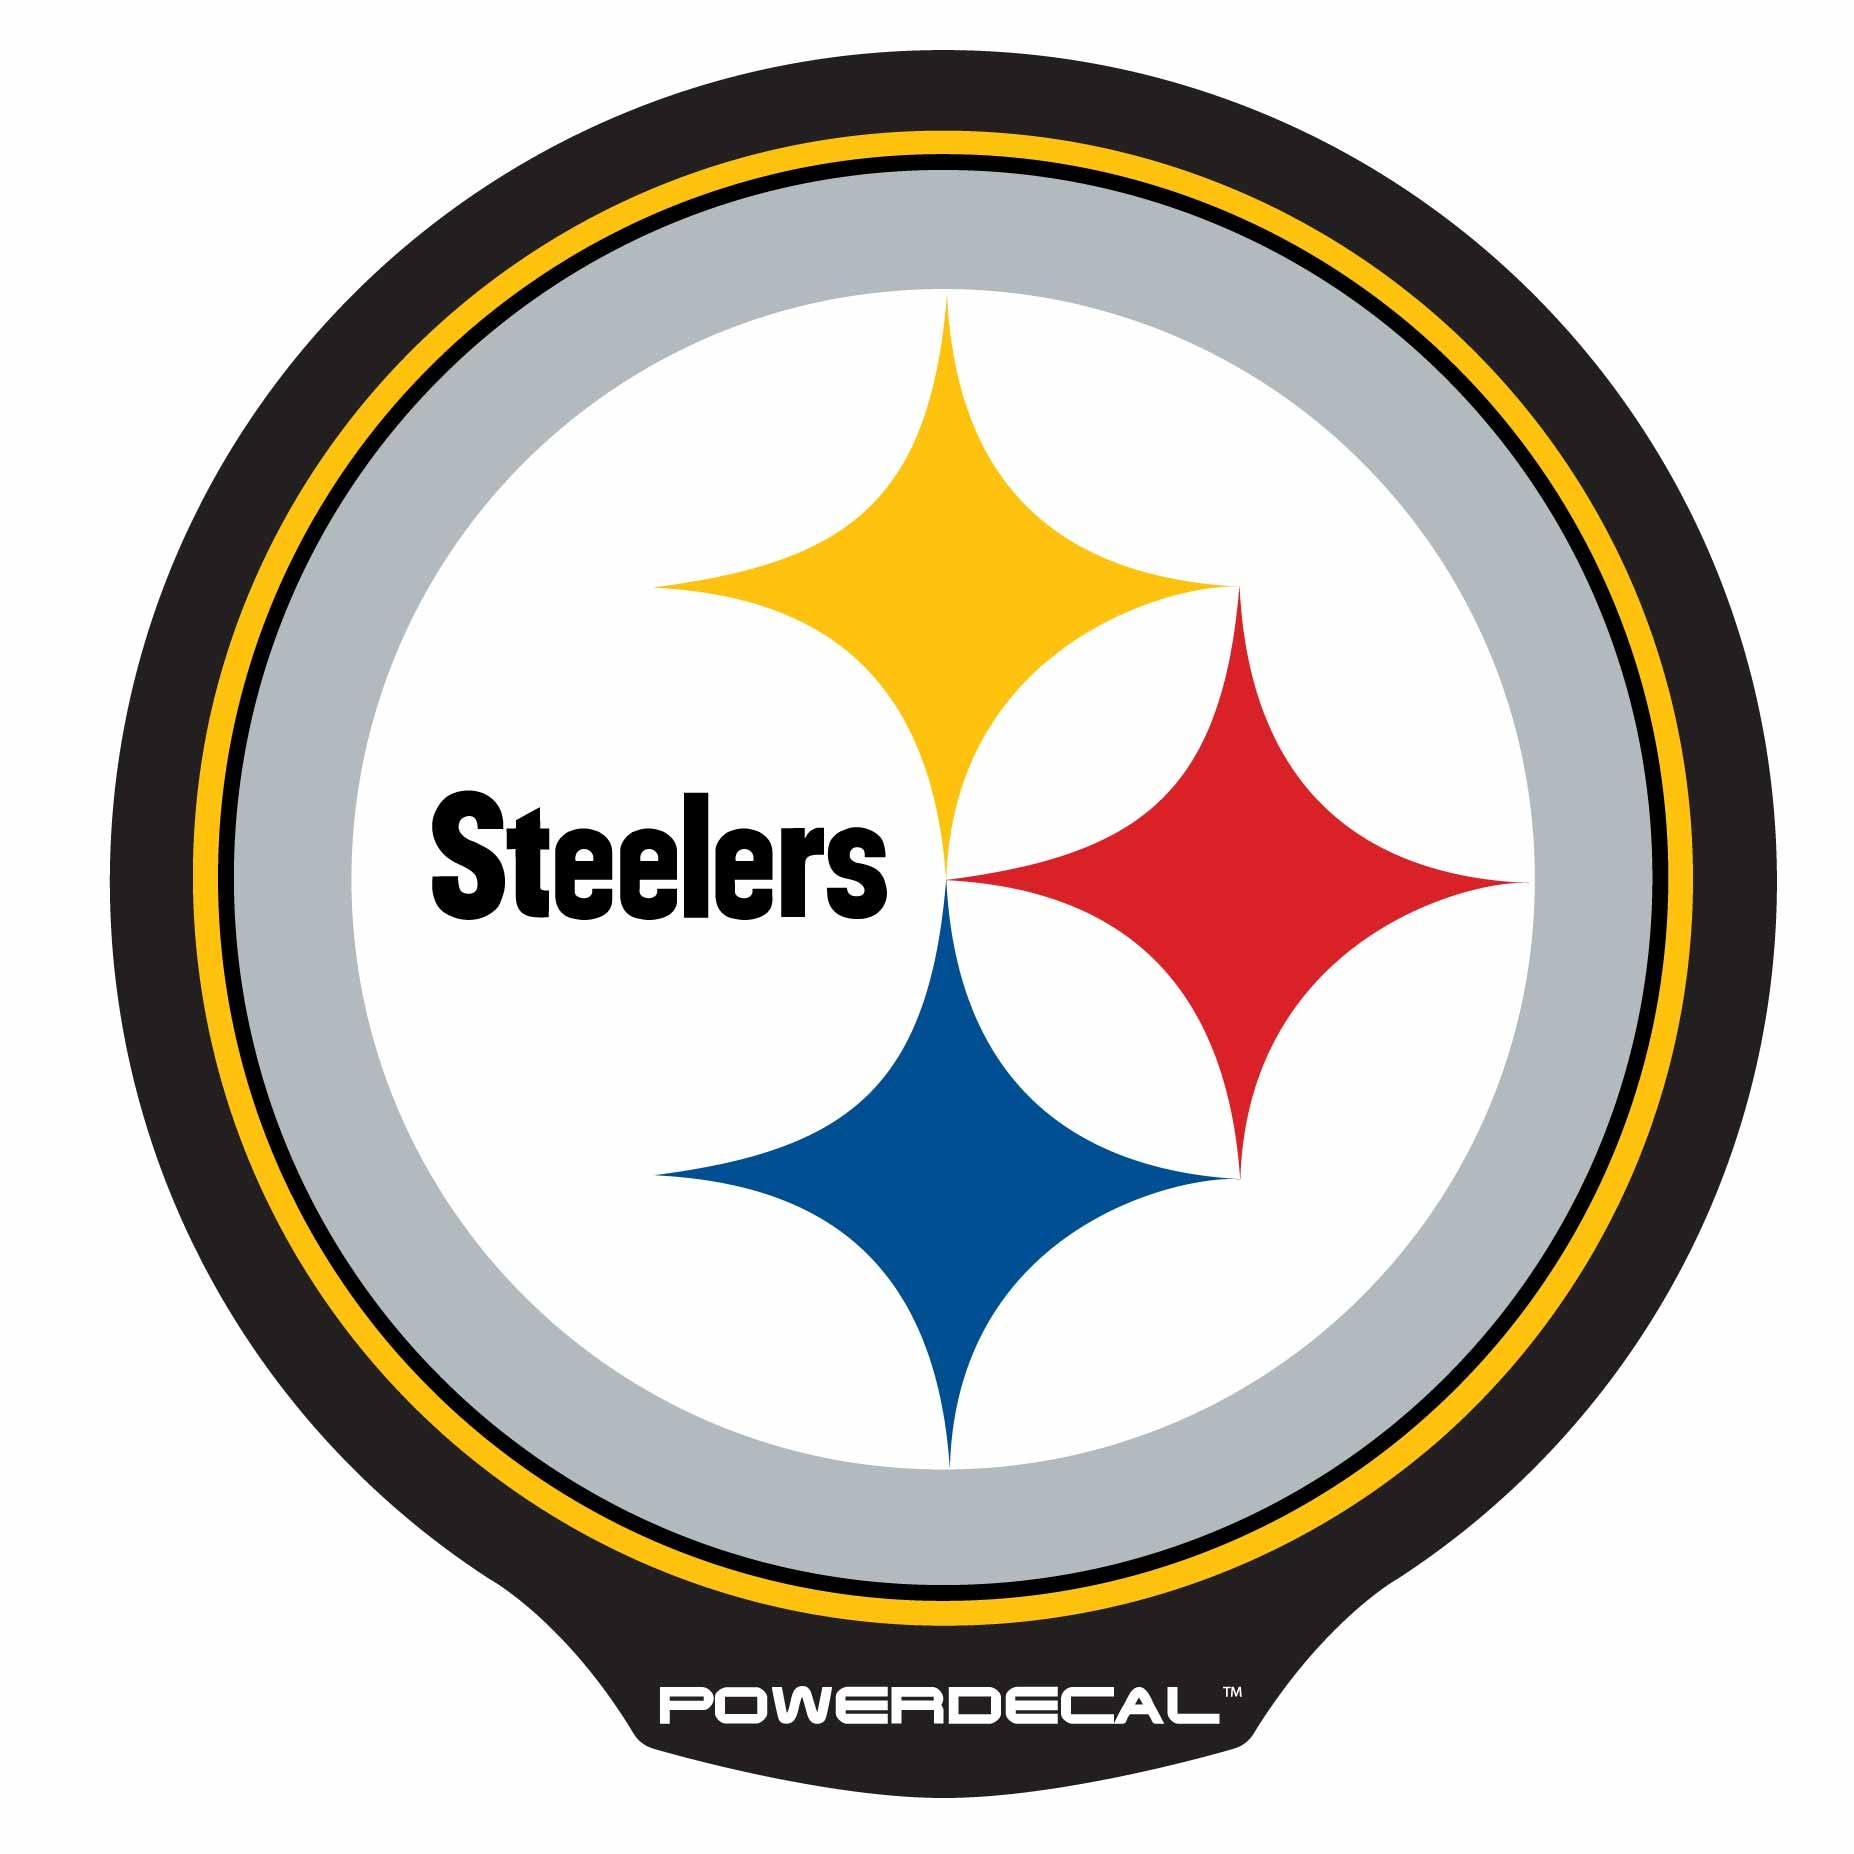 1854x1854 Nfl Steelers Clipart